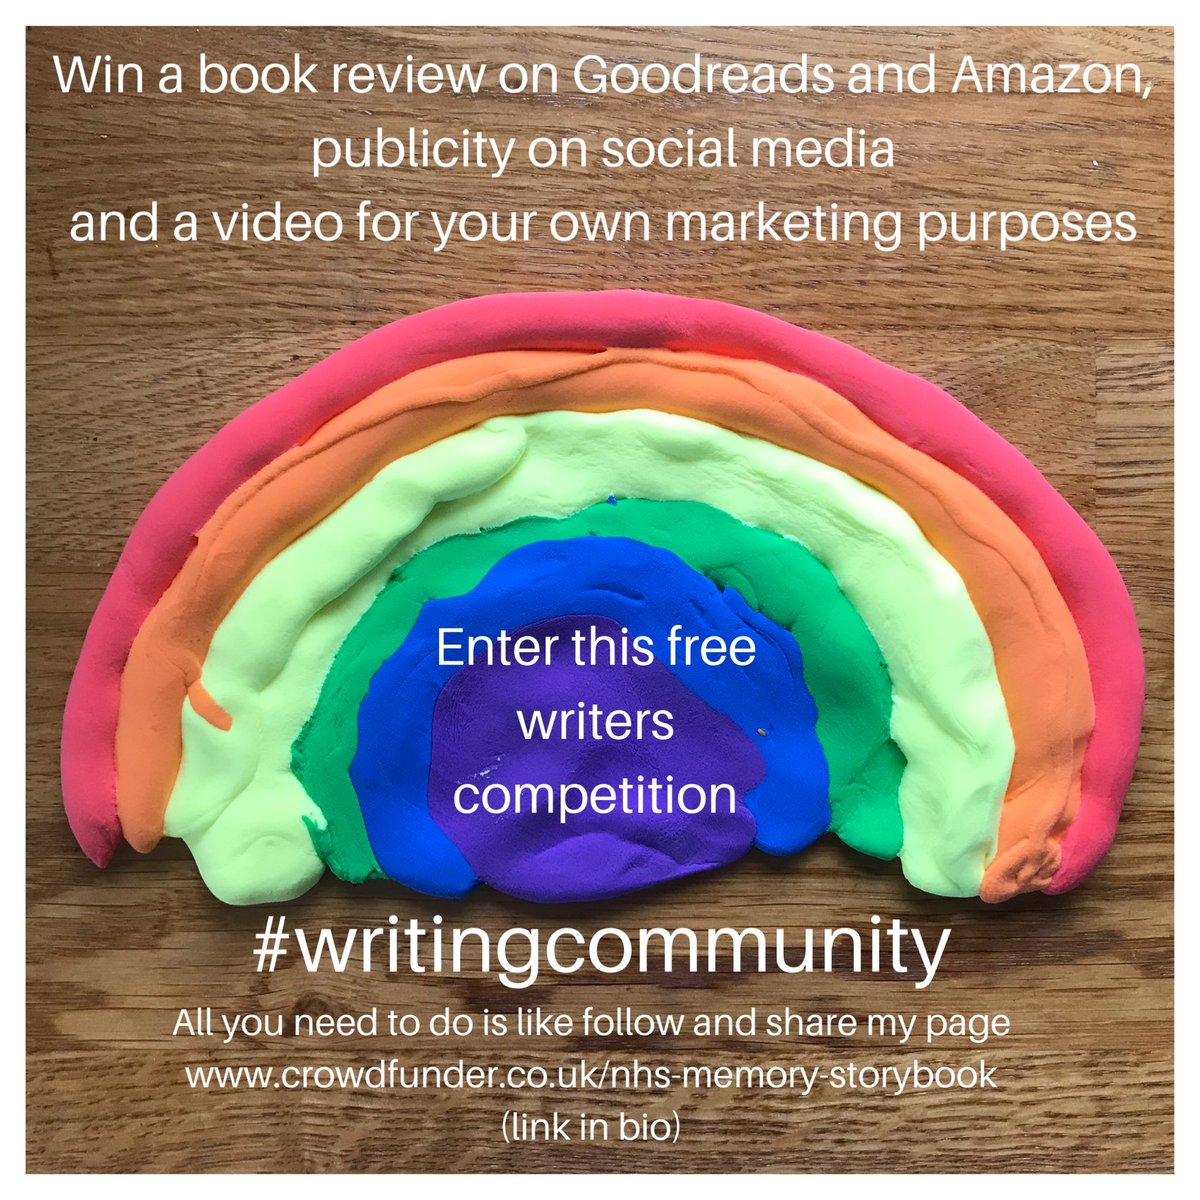 Please considering entering this exciting competition Twitter authors & members of the #WritingCommunity   What have you got to lose? It's FREE!  #author #book #booklover #Reading #writers #writersofinstagram #writing #Literature #indieauthors #competitiontime #MondayMotivation https://t.co/02cPUbwfN6